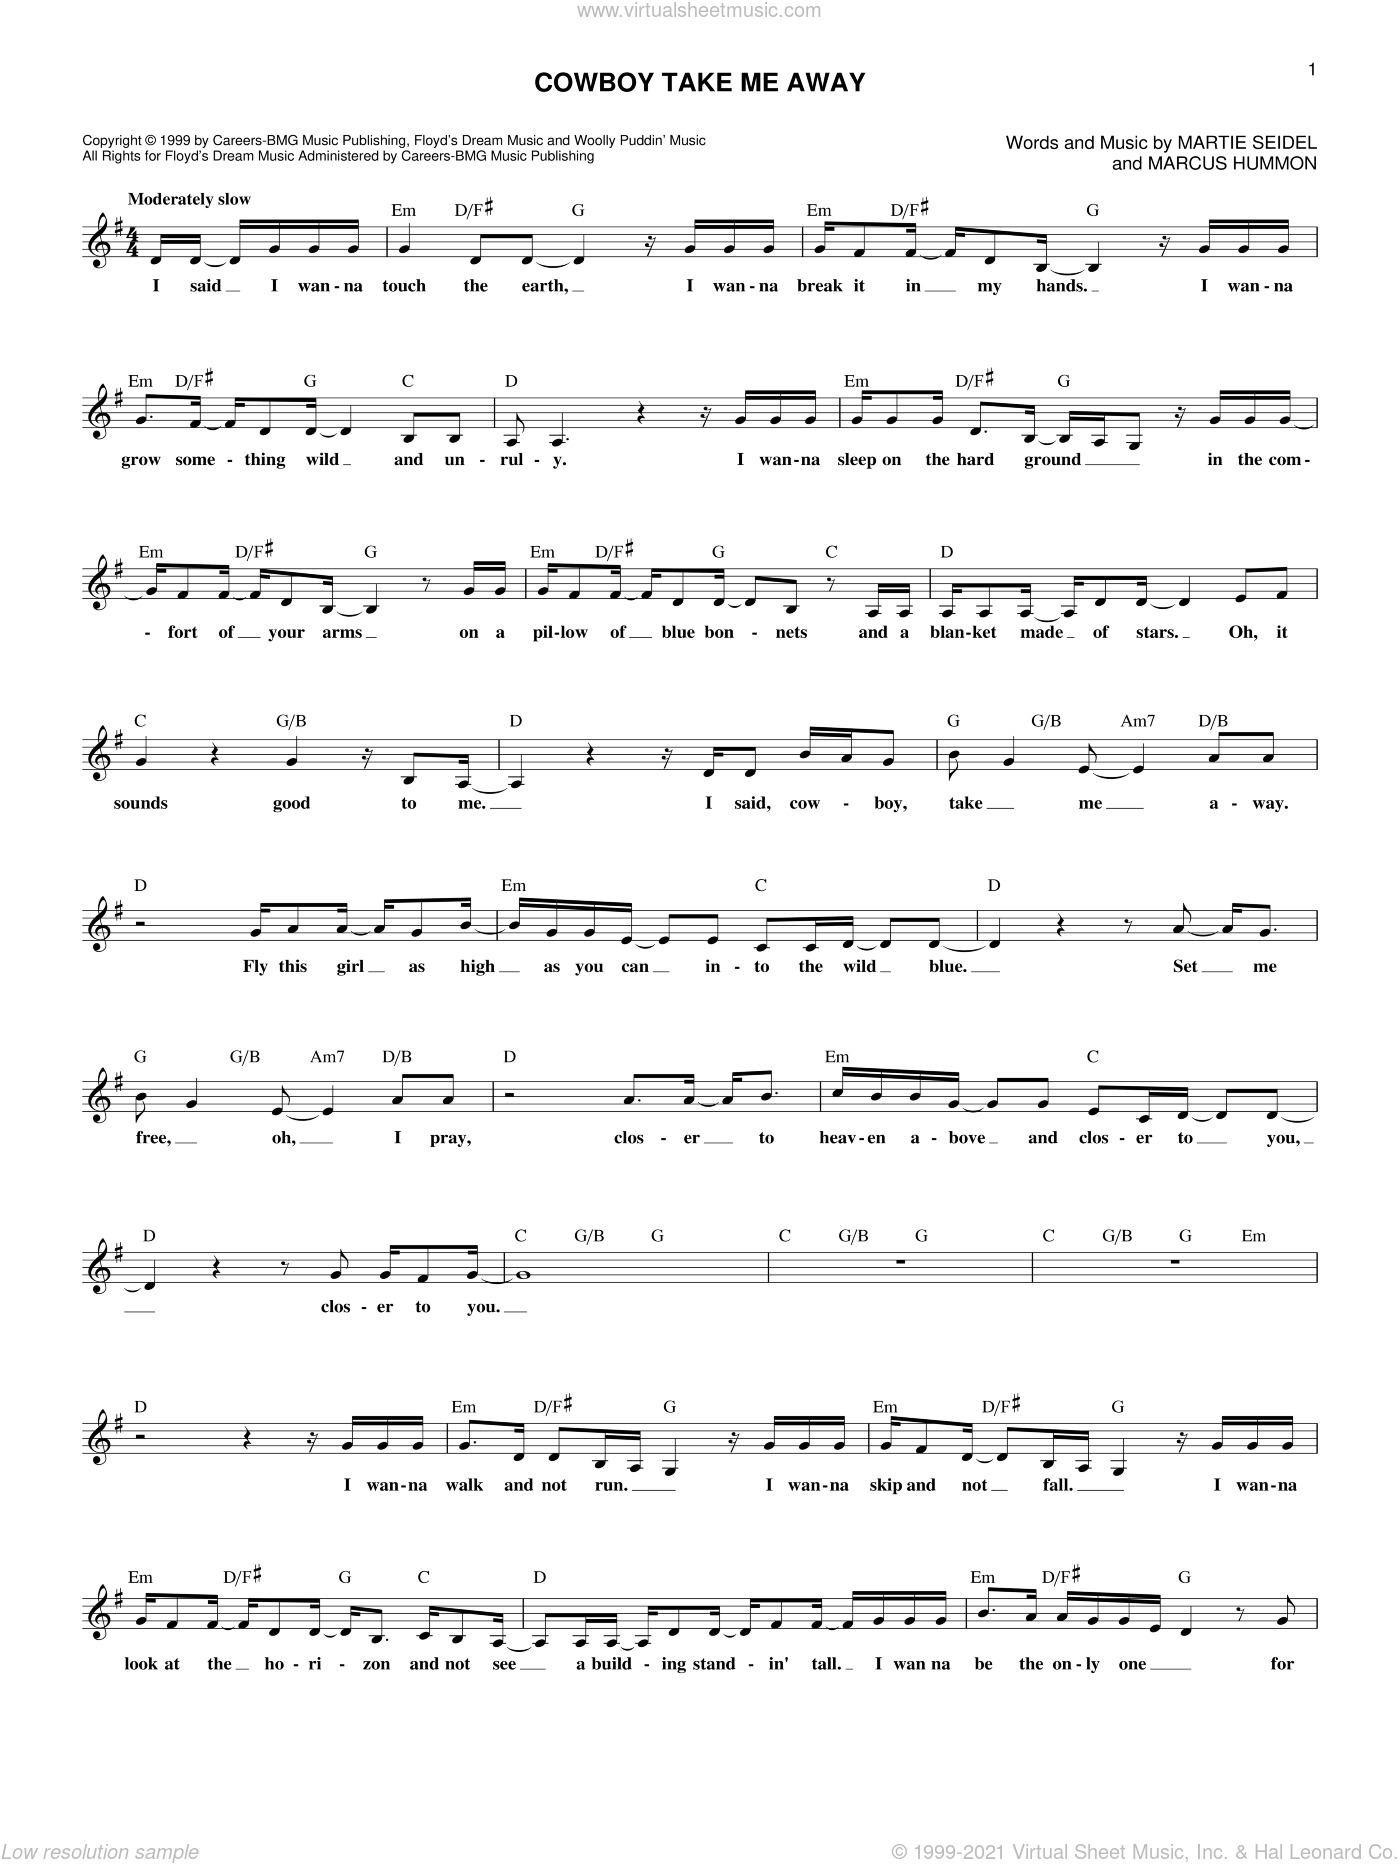 Cowboy Take Me Away sheet music for voice and other instruments (fake book) by Martie Seidel, Dixie Chicks and Marcus Hummon. Score Image Preview.